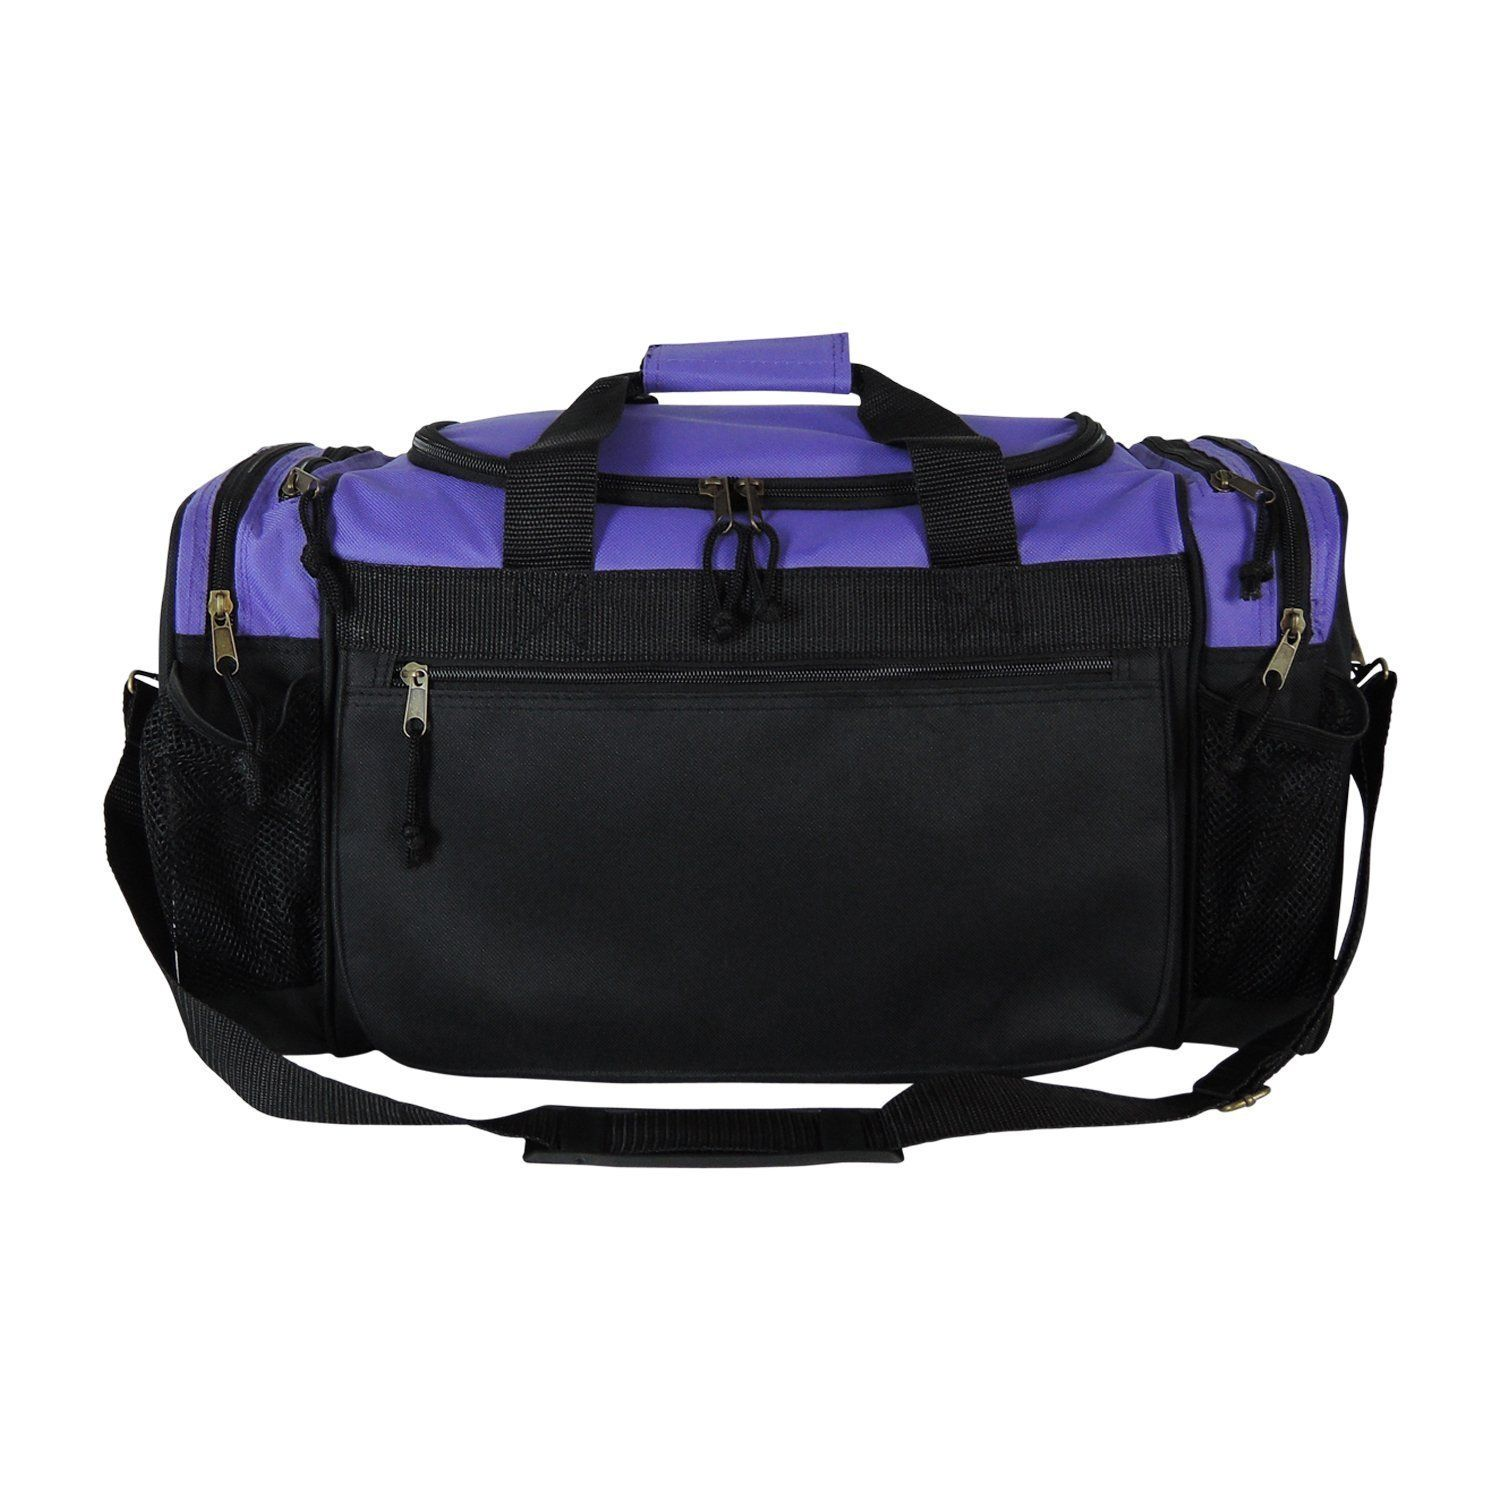 deff91c9ea6b ProEquip 17  Sport Gym Duffle Bag Travel Size Sport Durable Gym Bag --  Details can be found by clicking on the image.